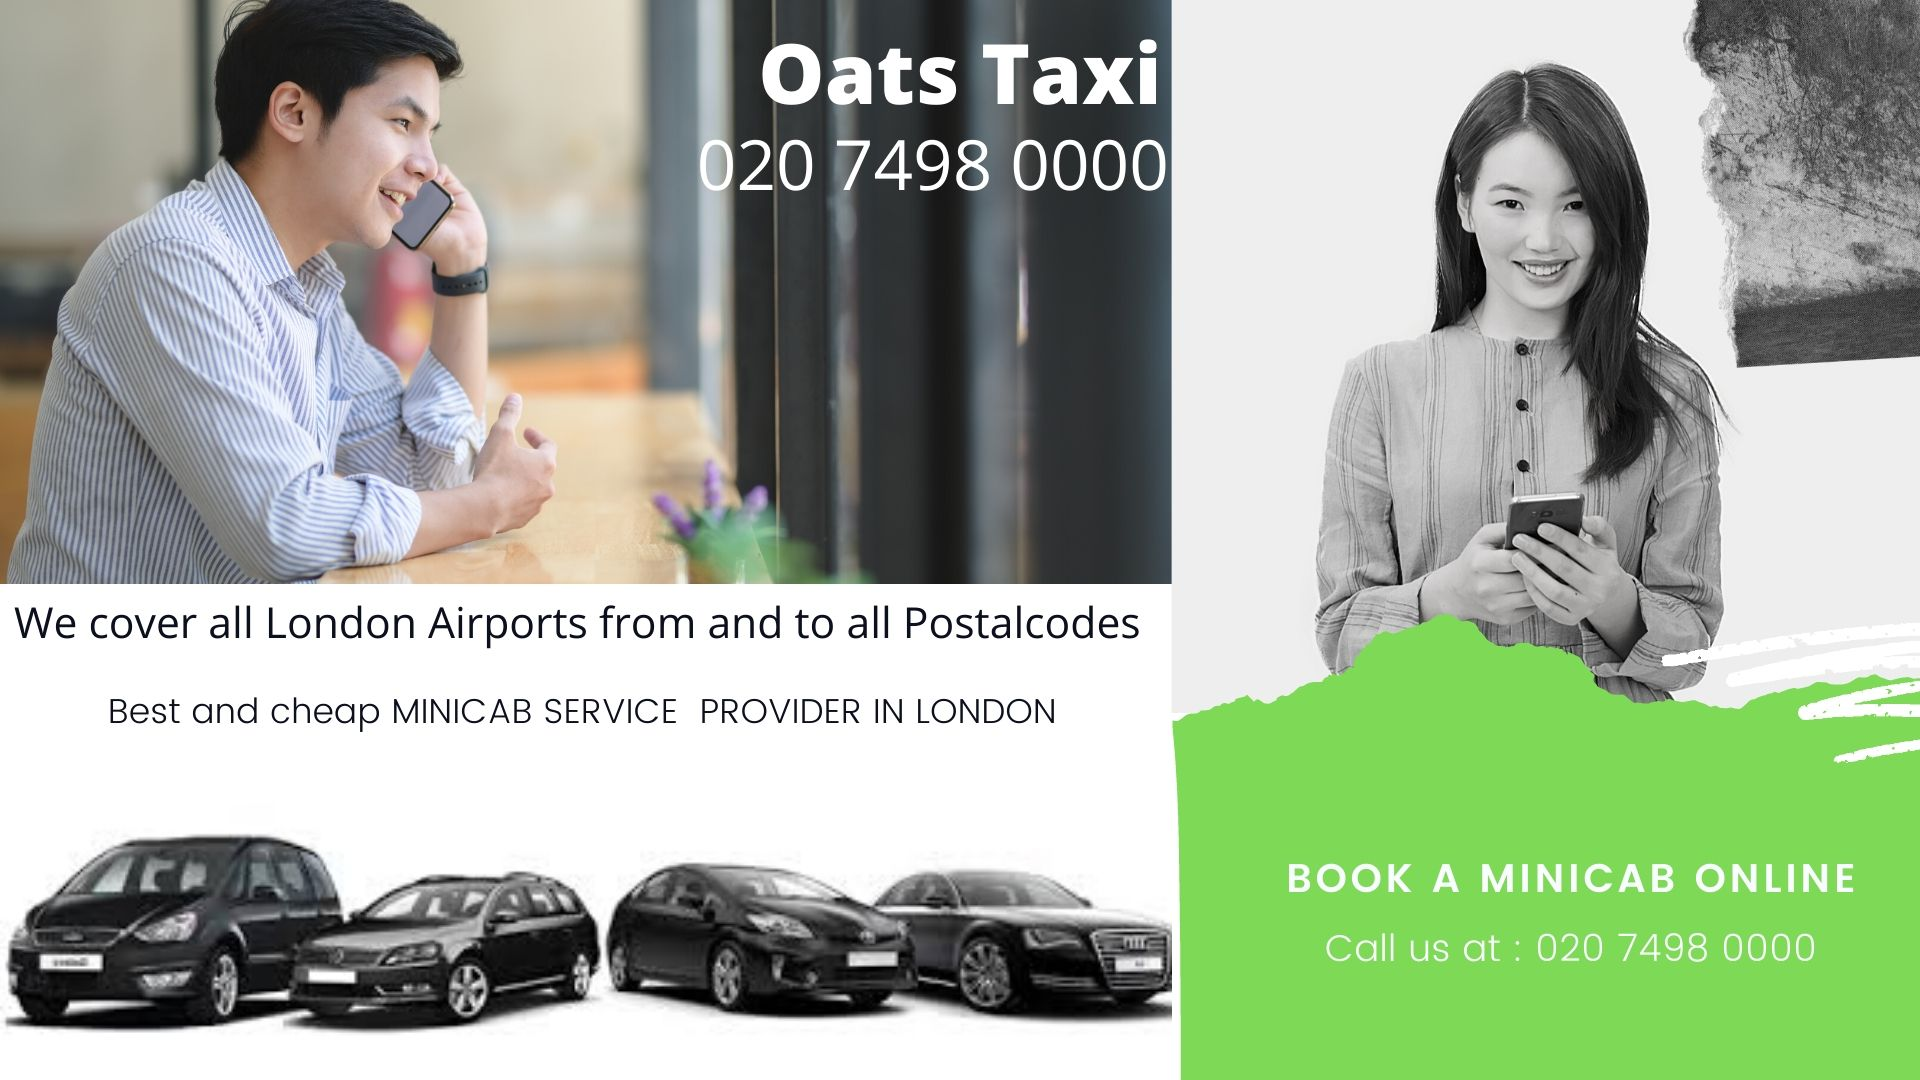 Minicab Office Near KAMBALA ROAD, Battersea SW11, Minicab From Battersea SW11 To Gatwick Airport